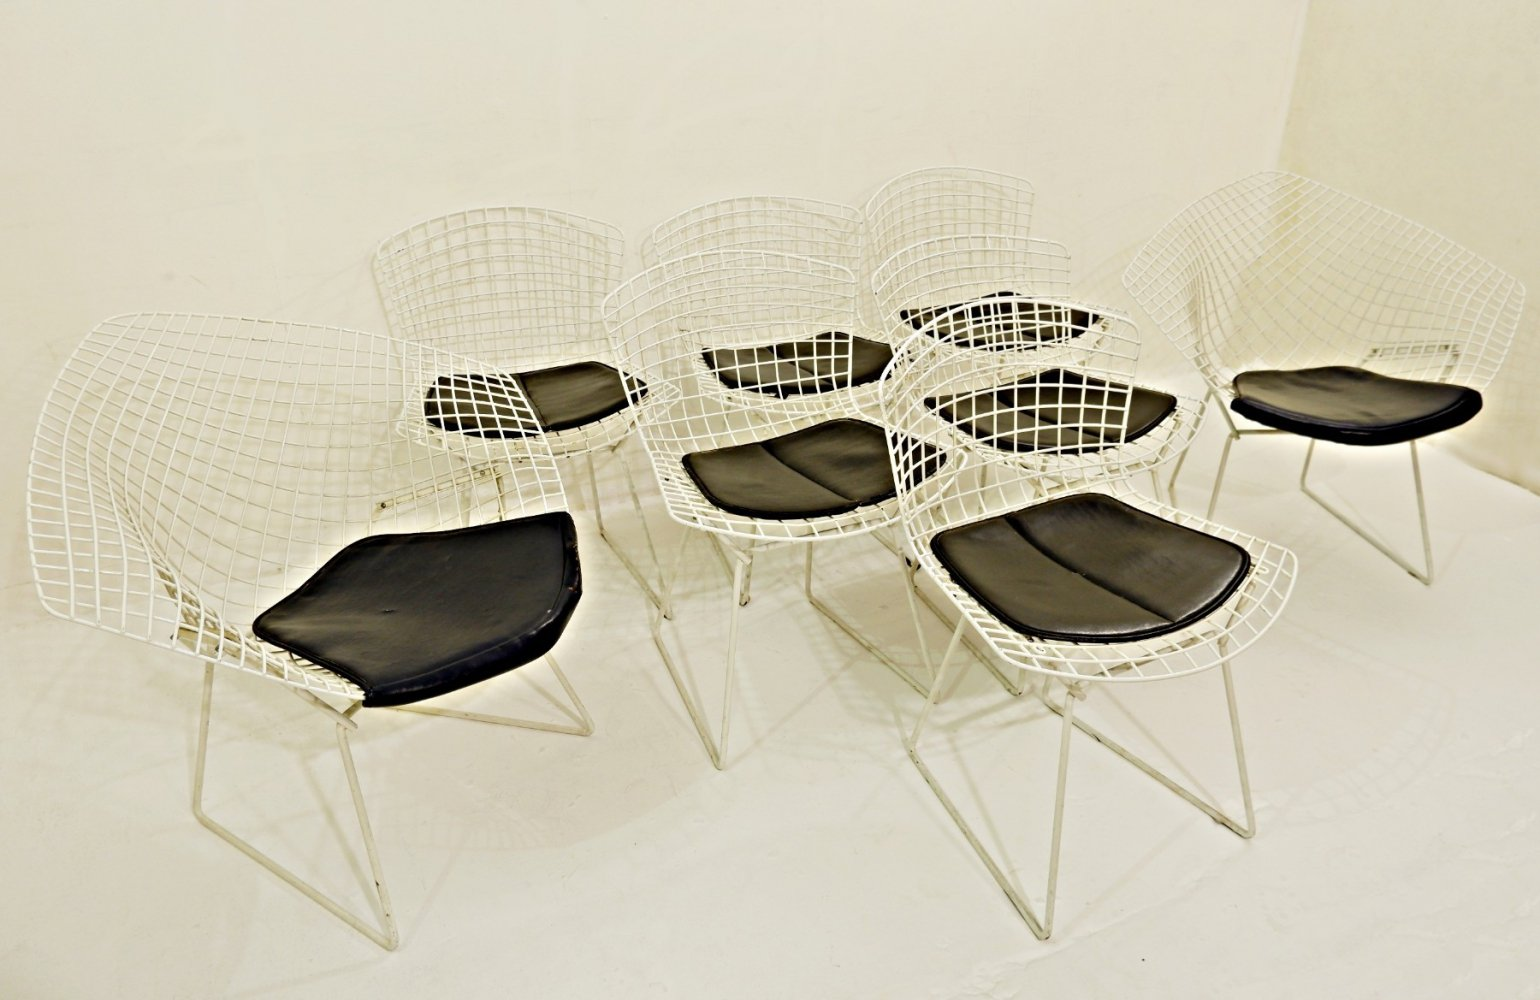 Set Of 6 Wire Chairs And 2 Diamond Armchairs by Harry Bertoia, 1960s